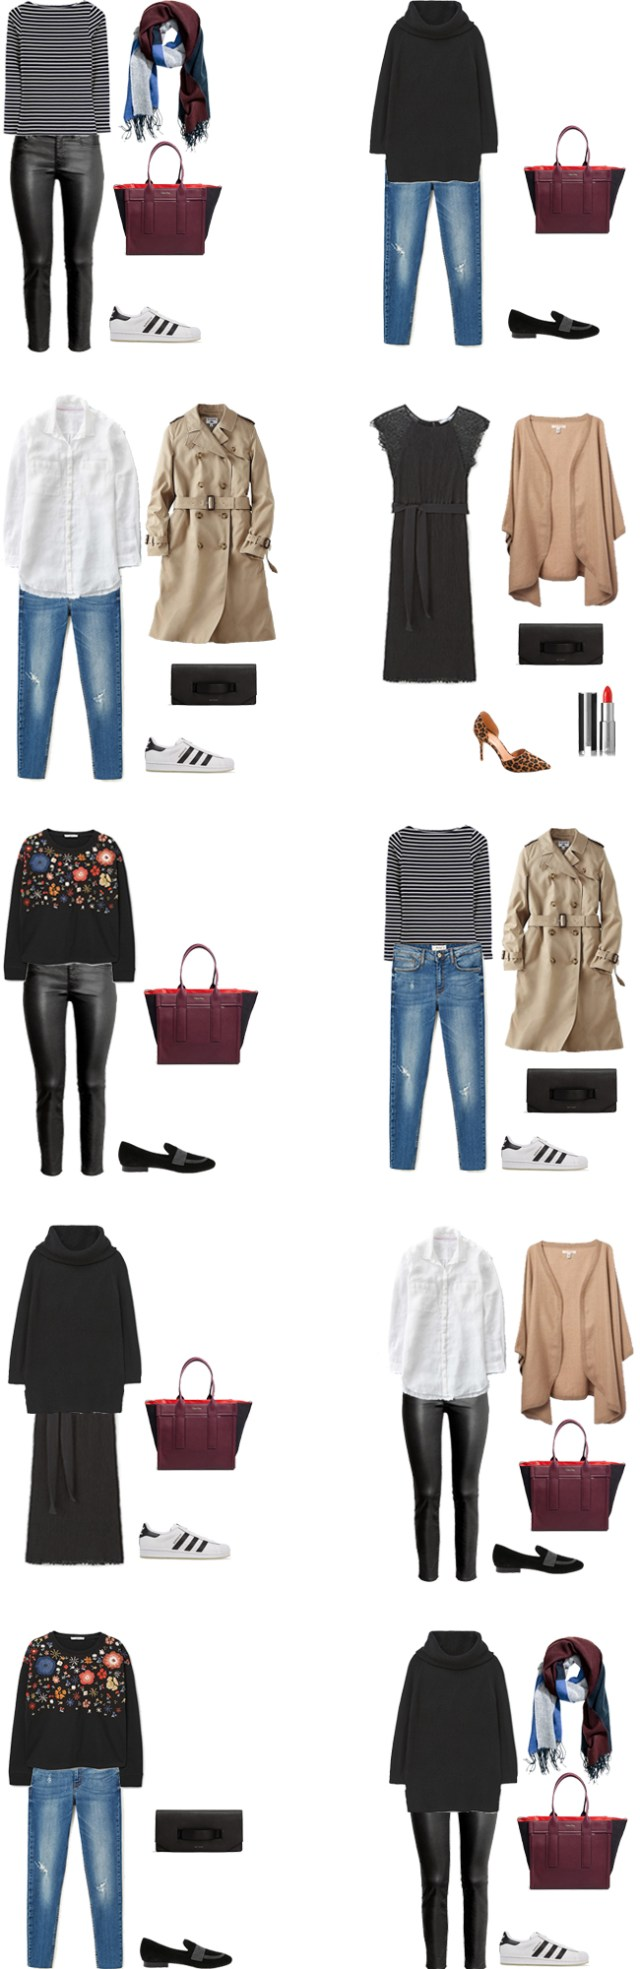 What to Wear on a 4 Day Fall Getaway 10 Outfit Options #travellight #packinglight #traveltips #travel